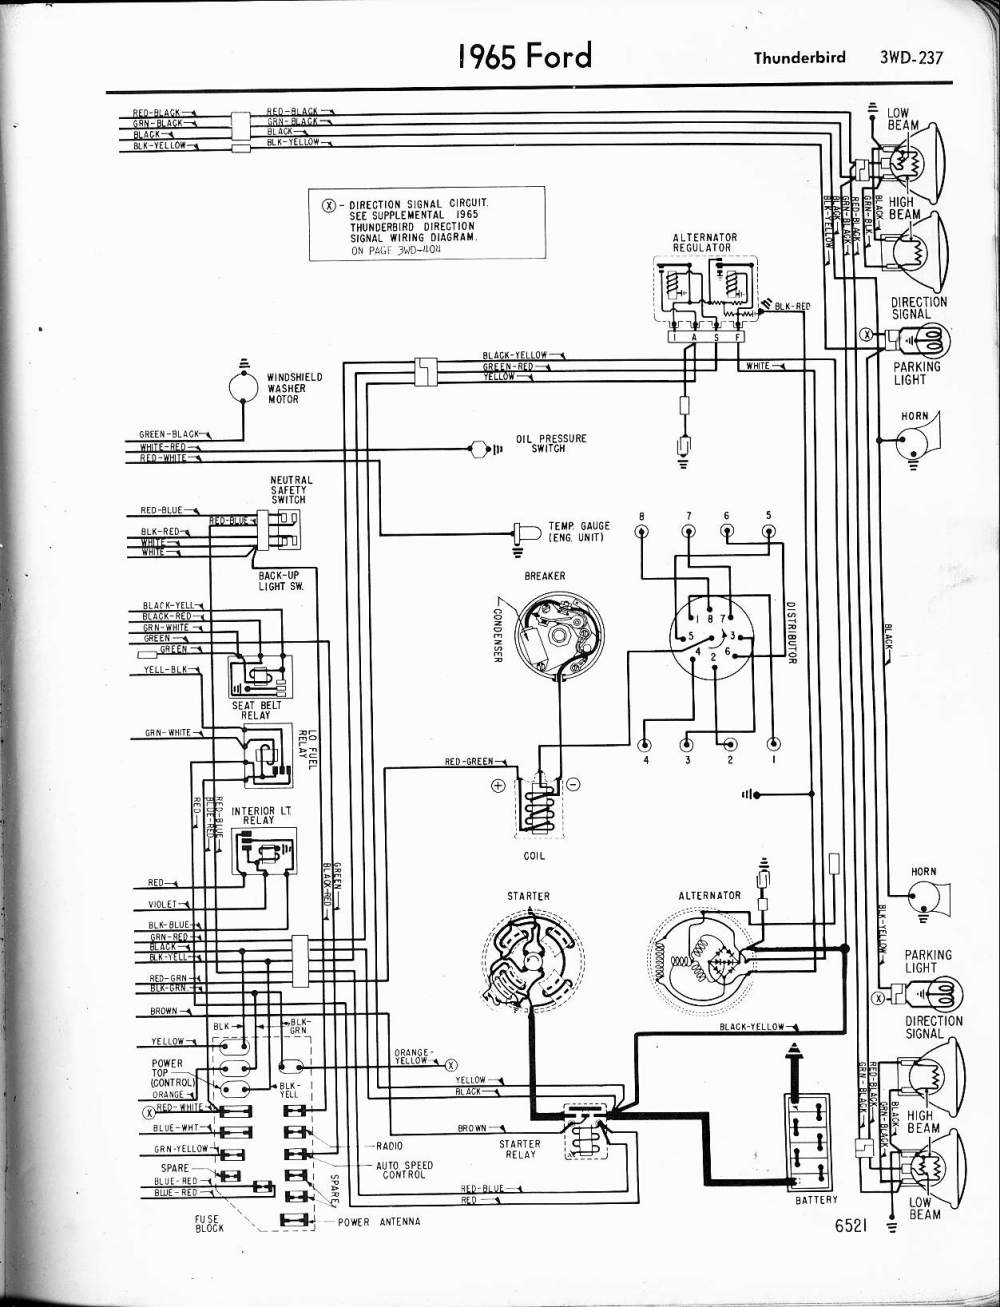 medium resolution of 57 65 ford wiring diagrams 1955 thunderbird wiring diagram 1956 ford wiring diagram